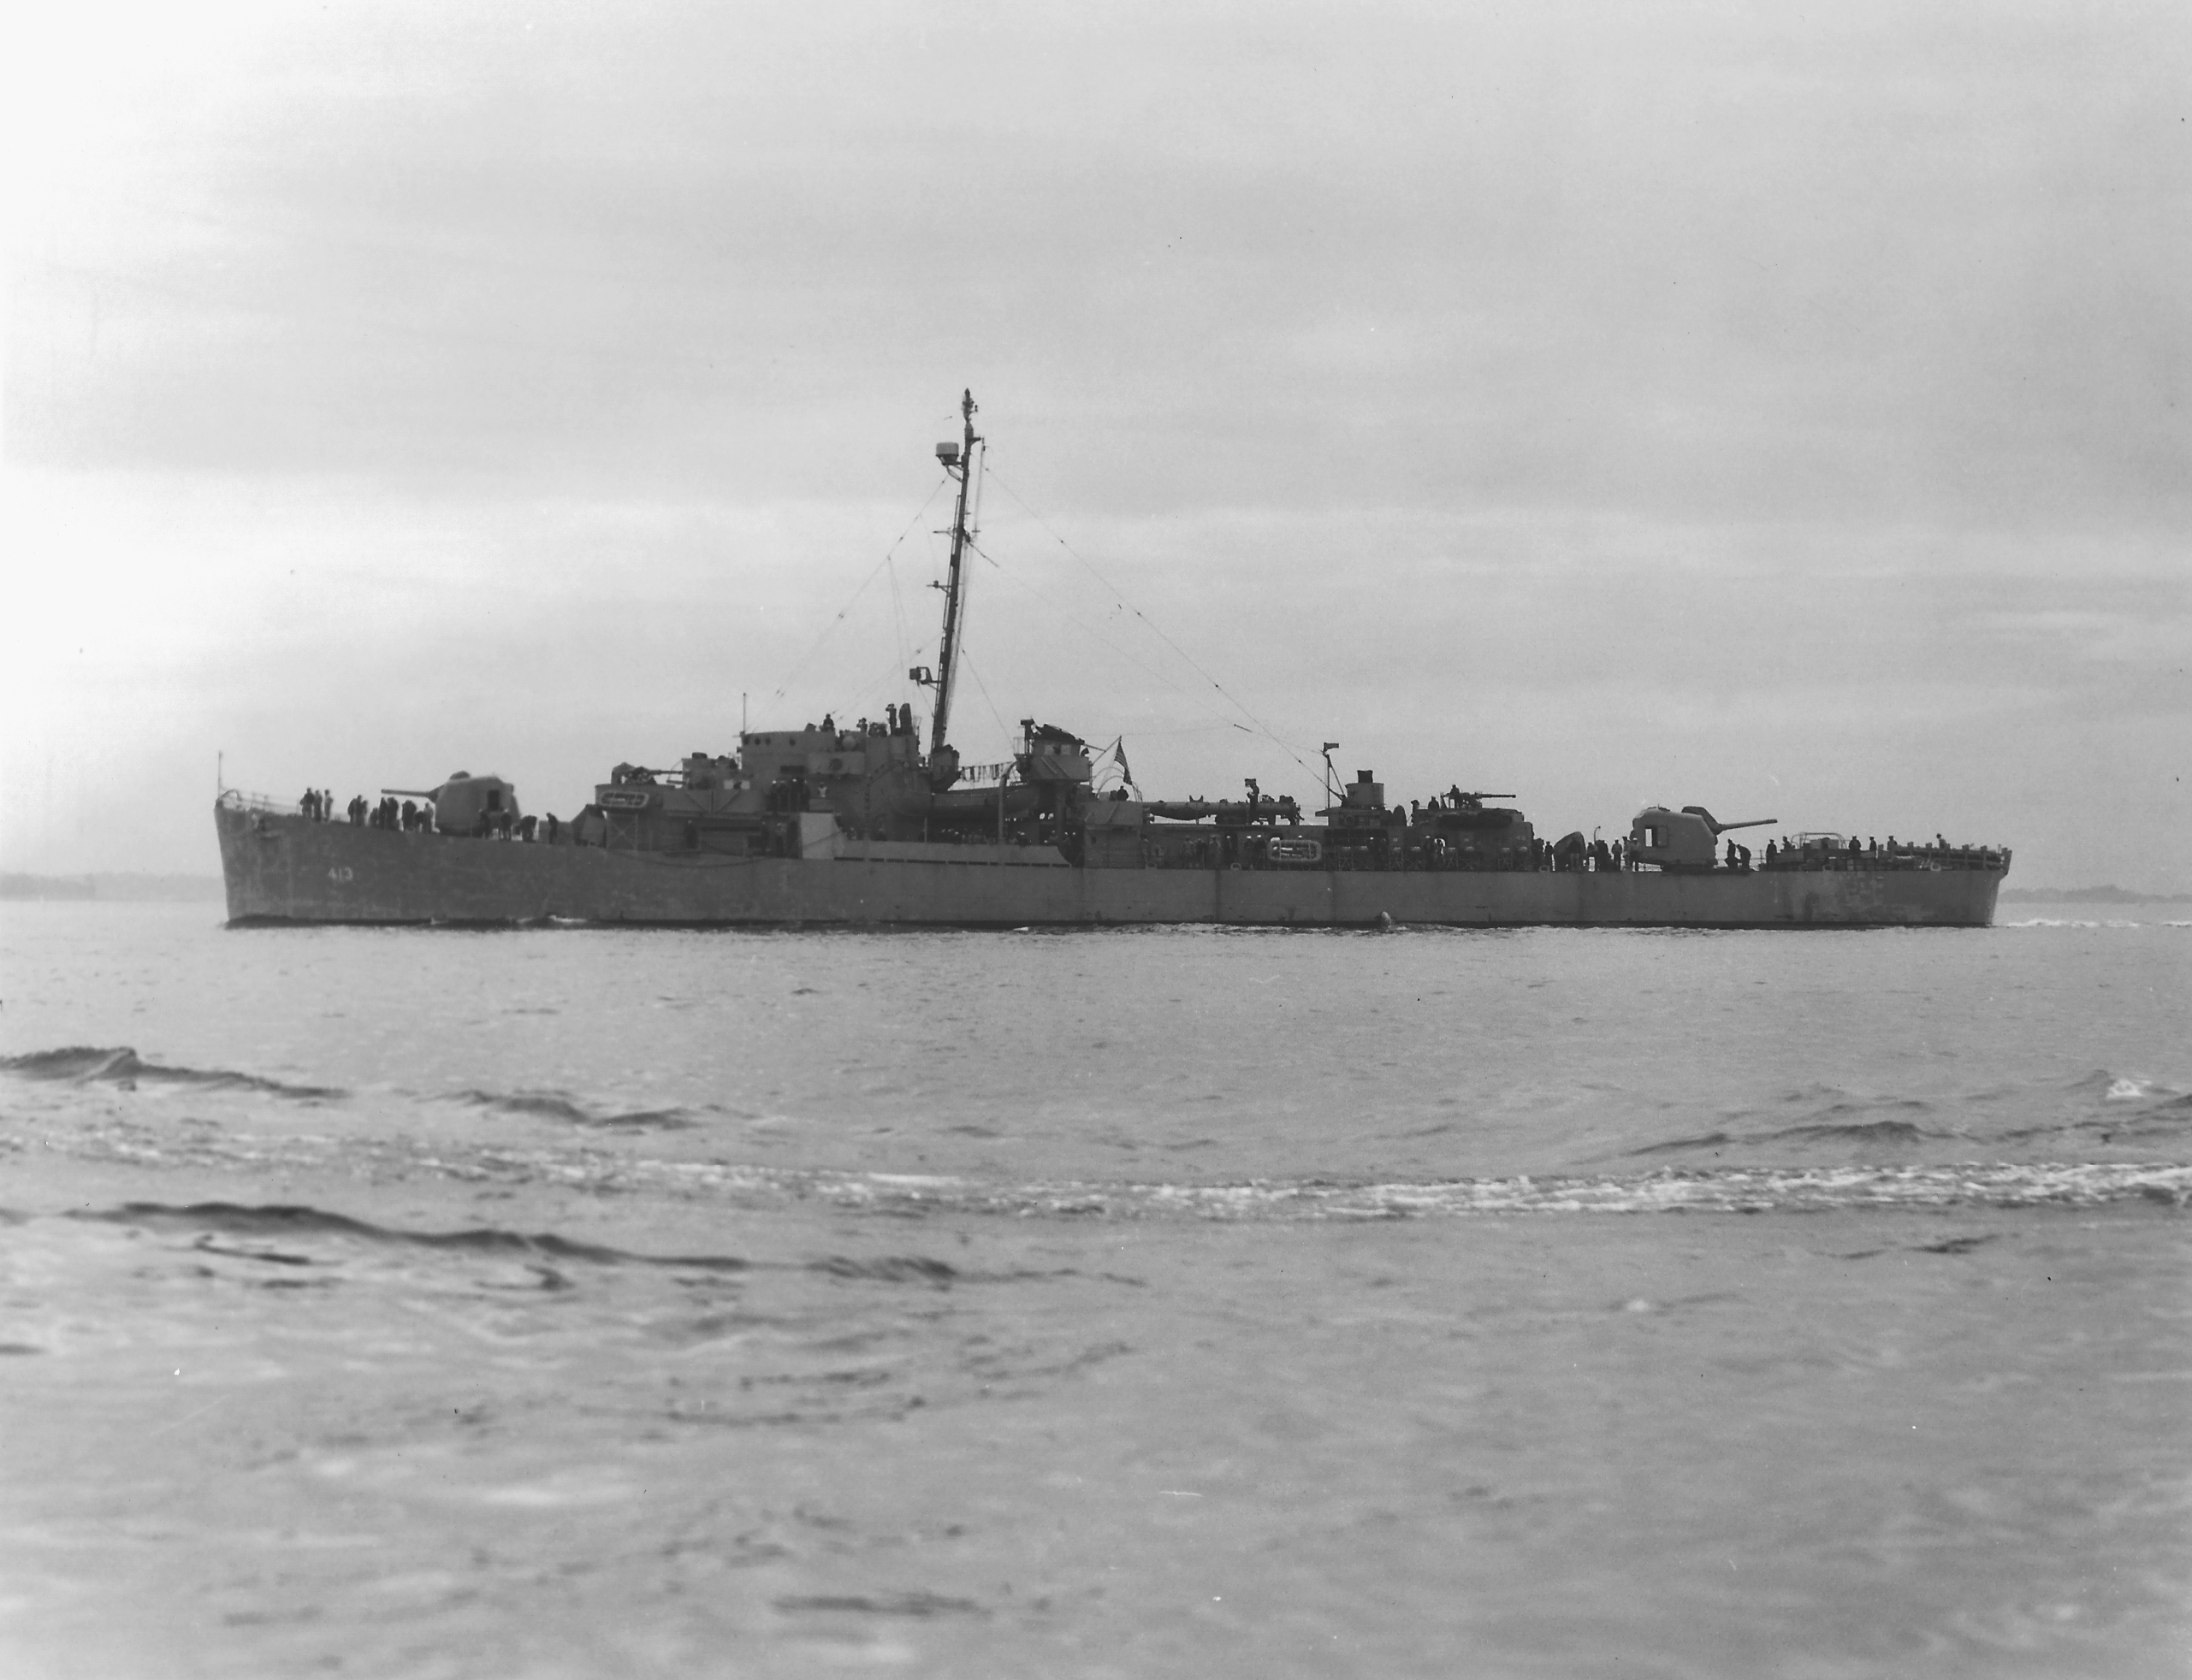 USS Samuel B. Roberts %28DE 413%29 off Boston%2C Massachusetts %28USA%29%2C circa in June 1944 %28NH 90603%29 - Premium Ship Suggestion: T4 Samuel B. Roberts (v.2)